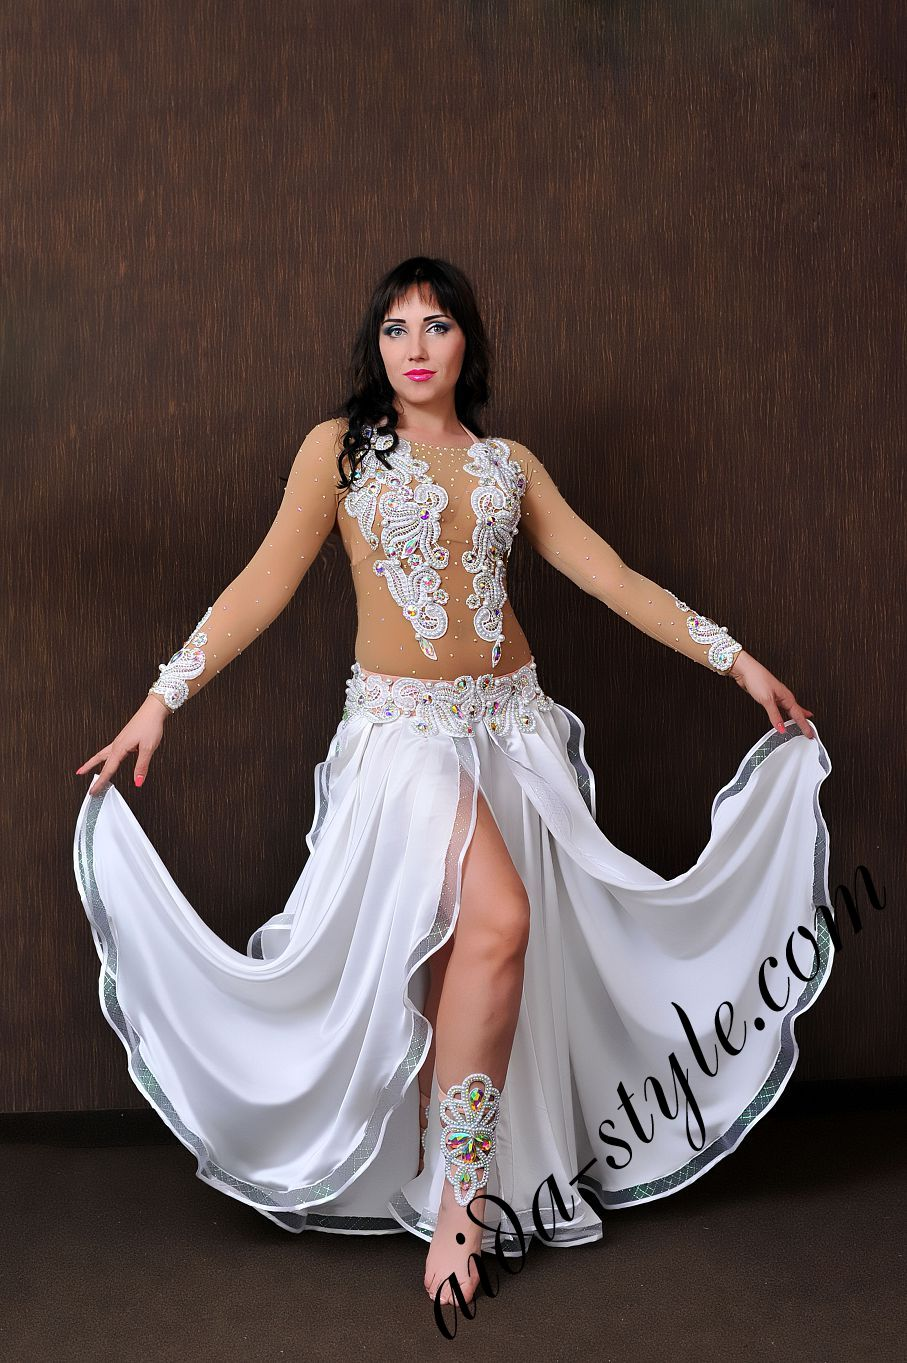 aida style oriental full coverage costume full coverage